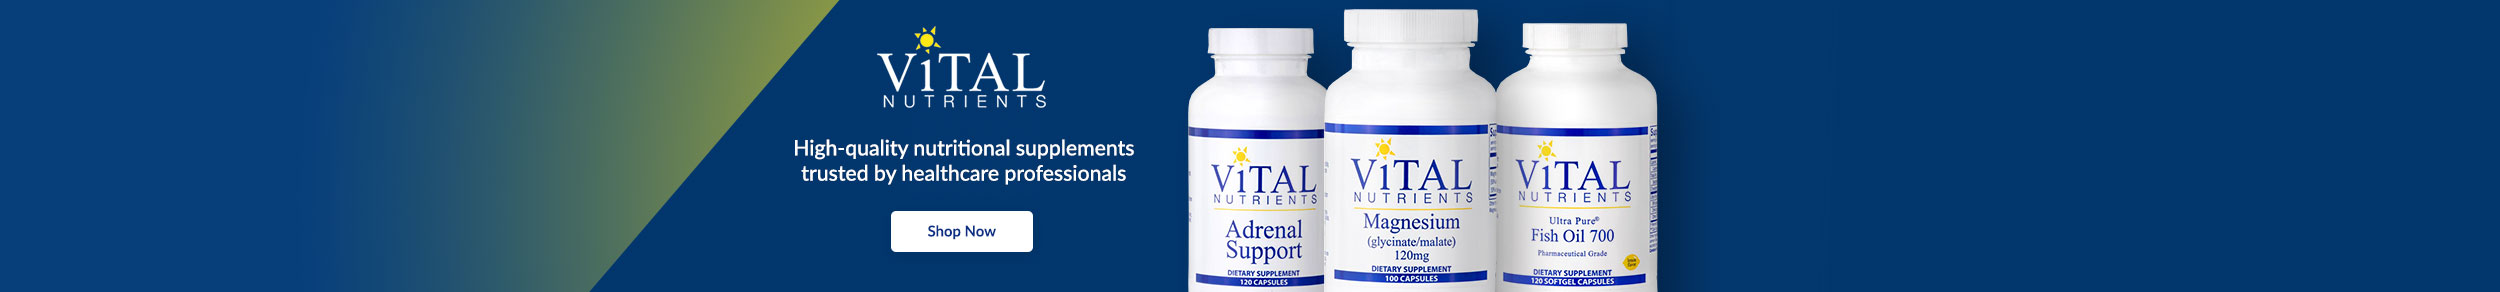 Vital Nutrients - Laboratory-tested formulas for maximum potency